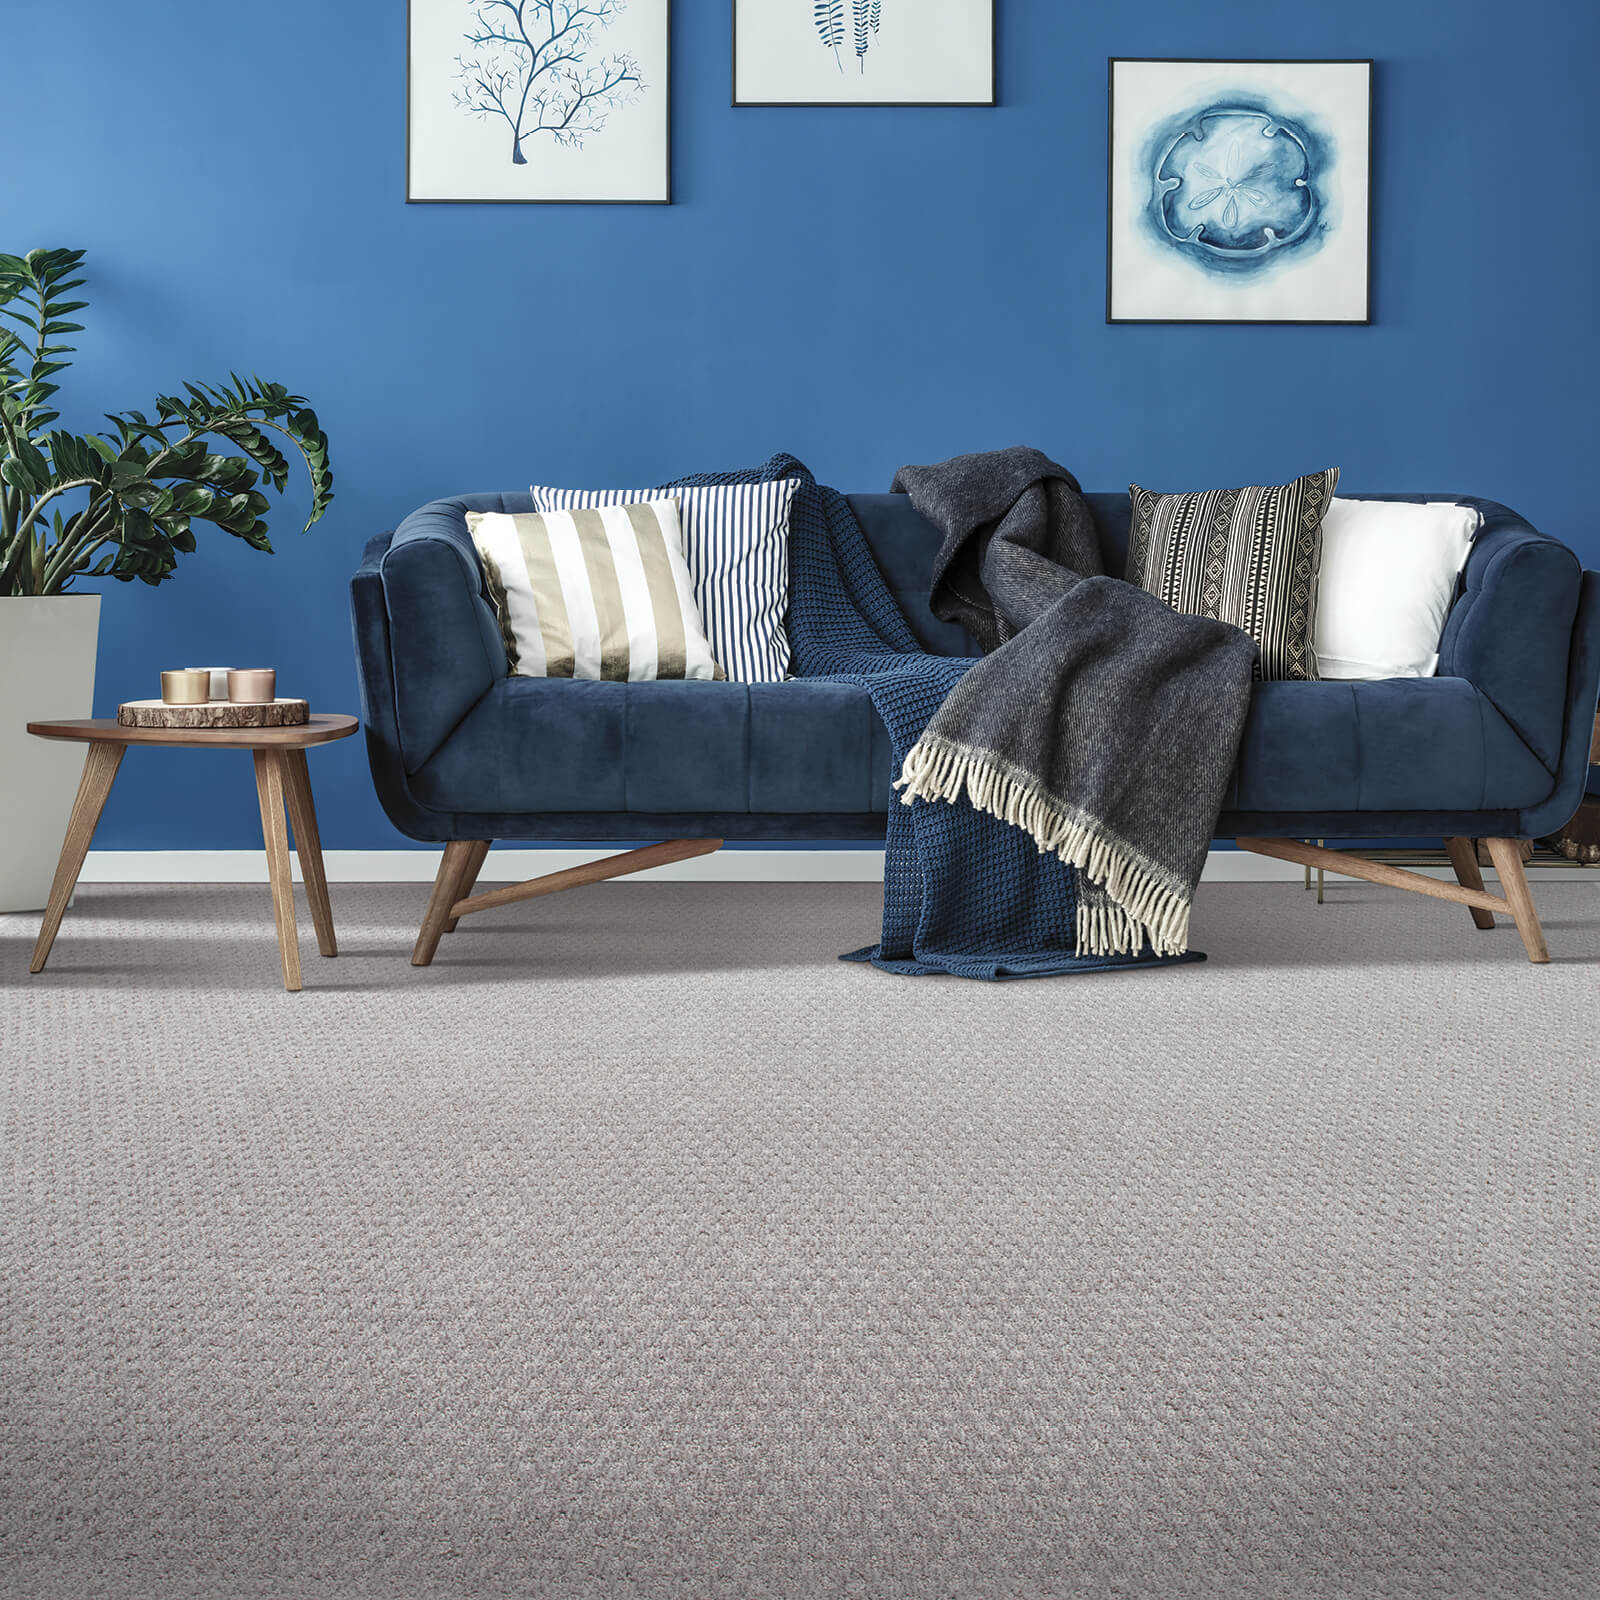 Blue sofa on Carpet | All Floors Design Centre